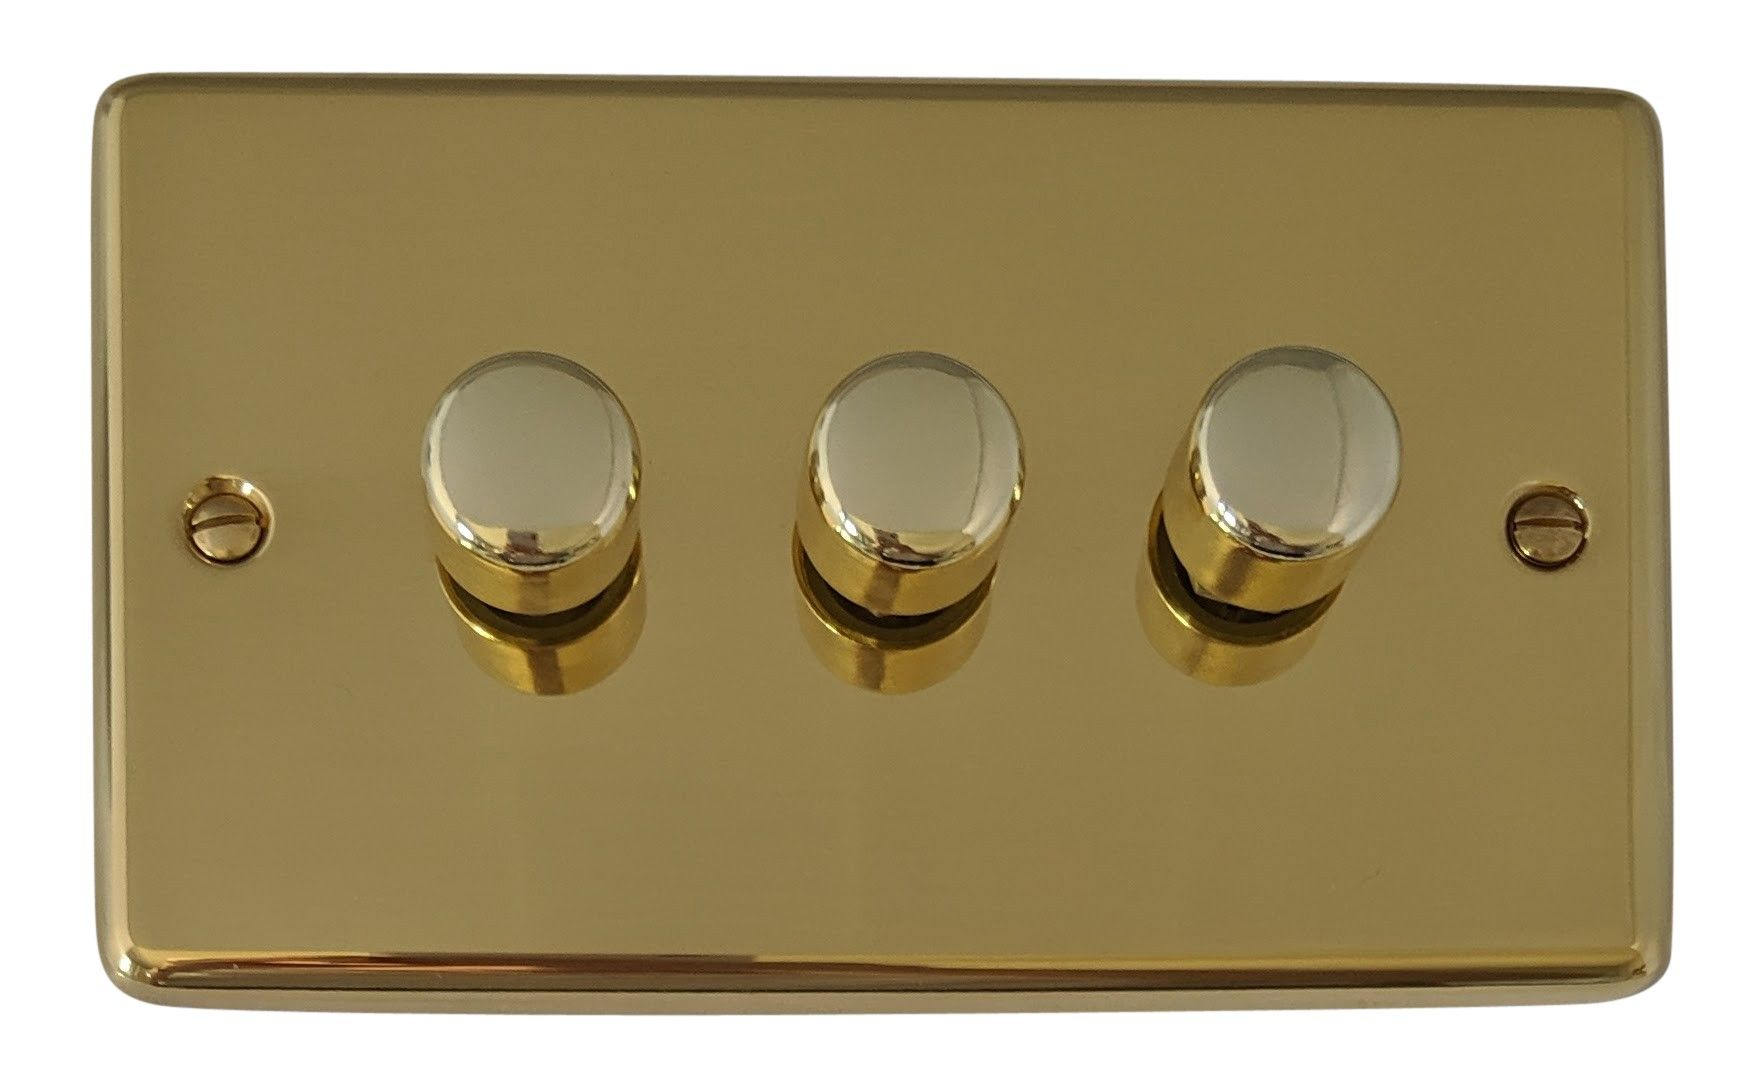 G&H CB13 Standard Plate Polished Brass 3 Gang 1 or 2 Way 40-400W Dimmer Switch